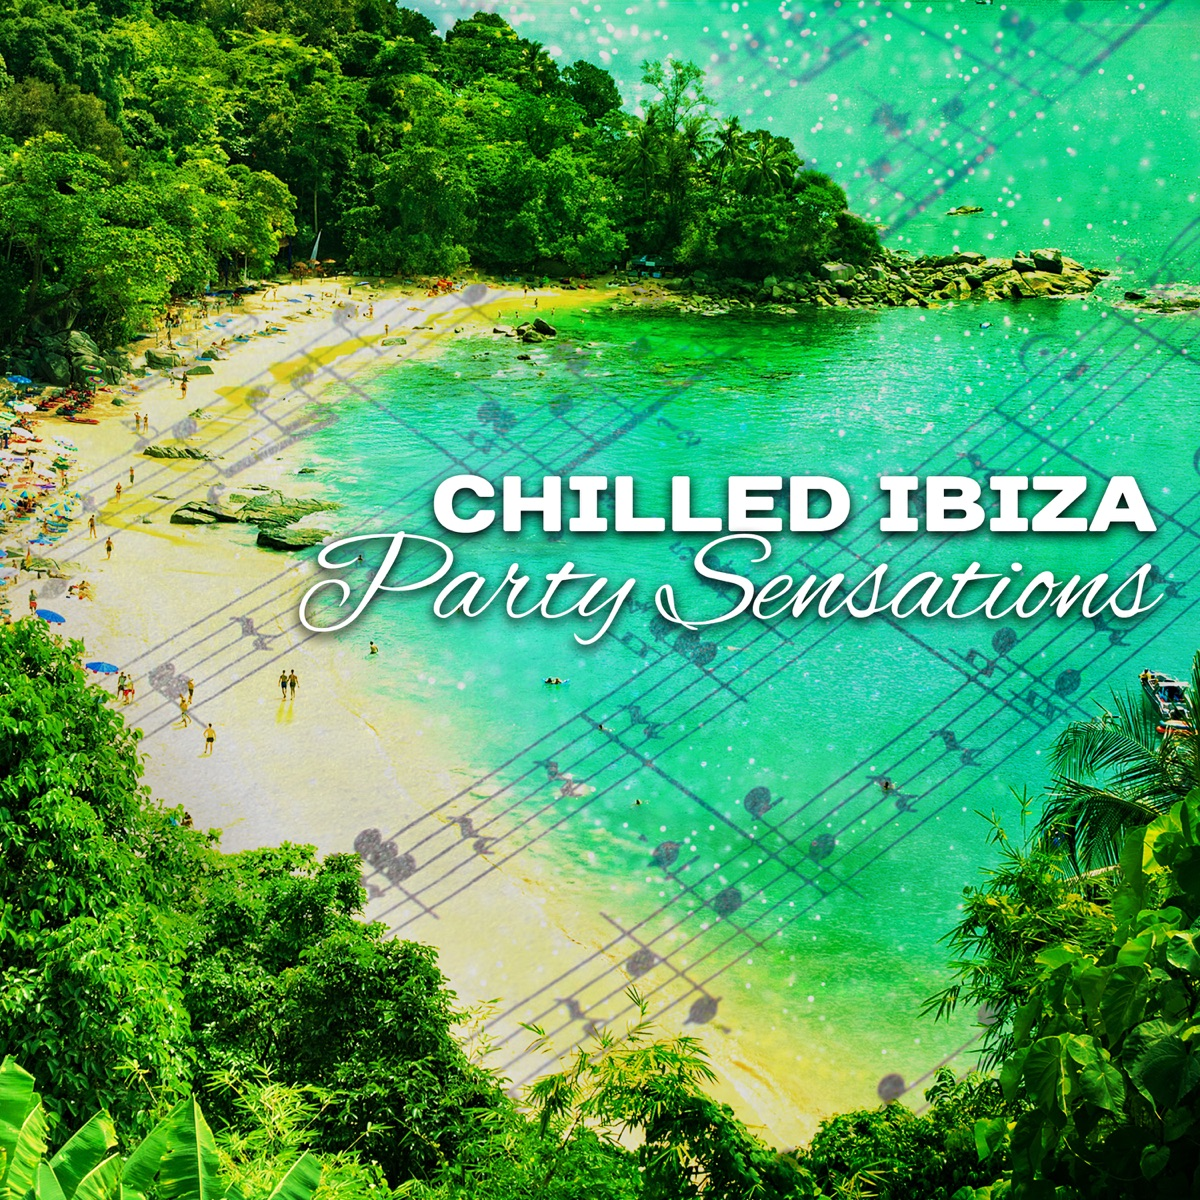 Chilled Ibiza Party Sensations: Relaxing Night on the Beach